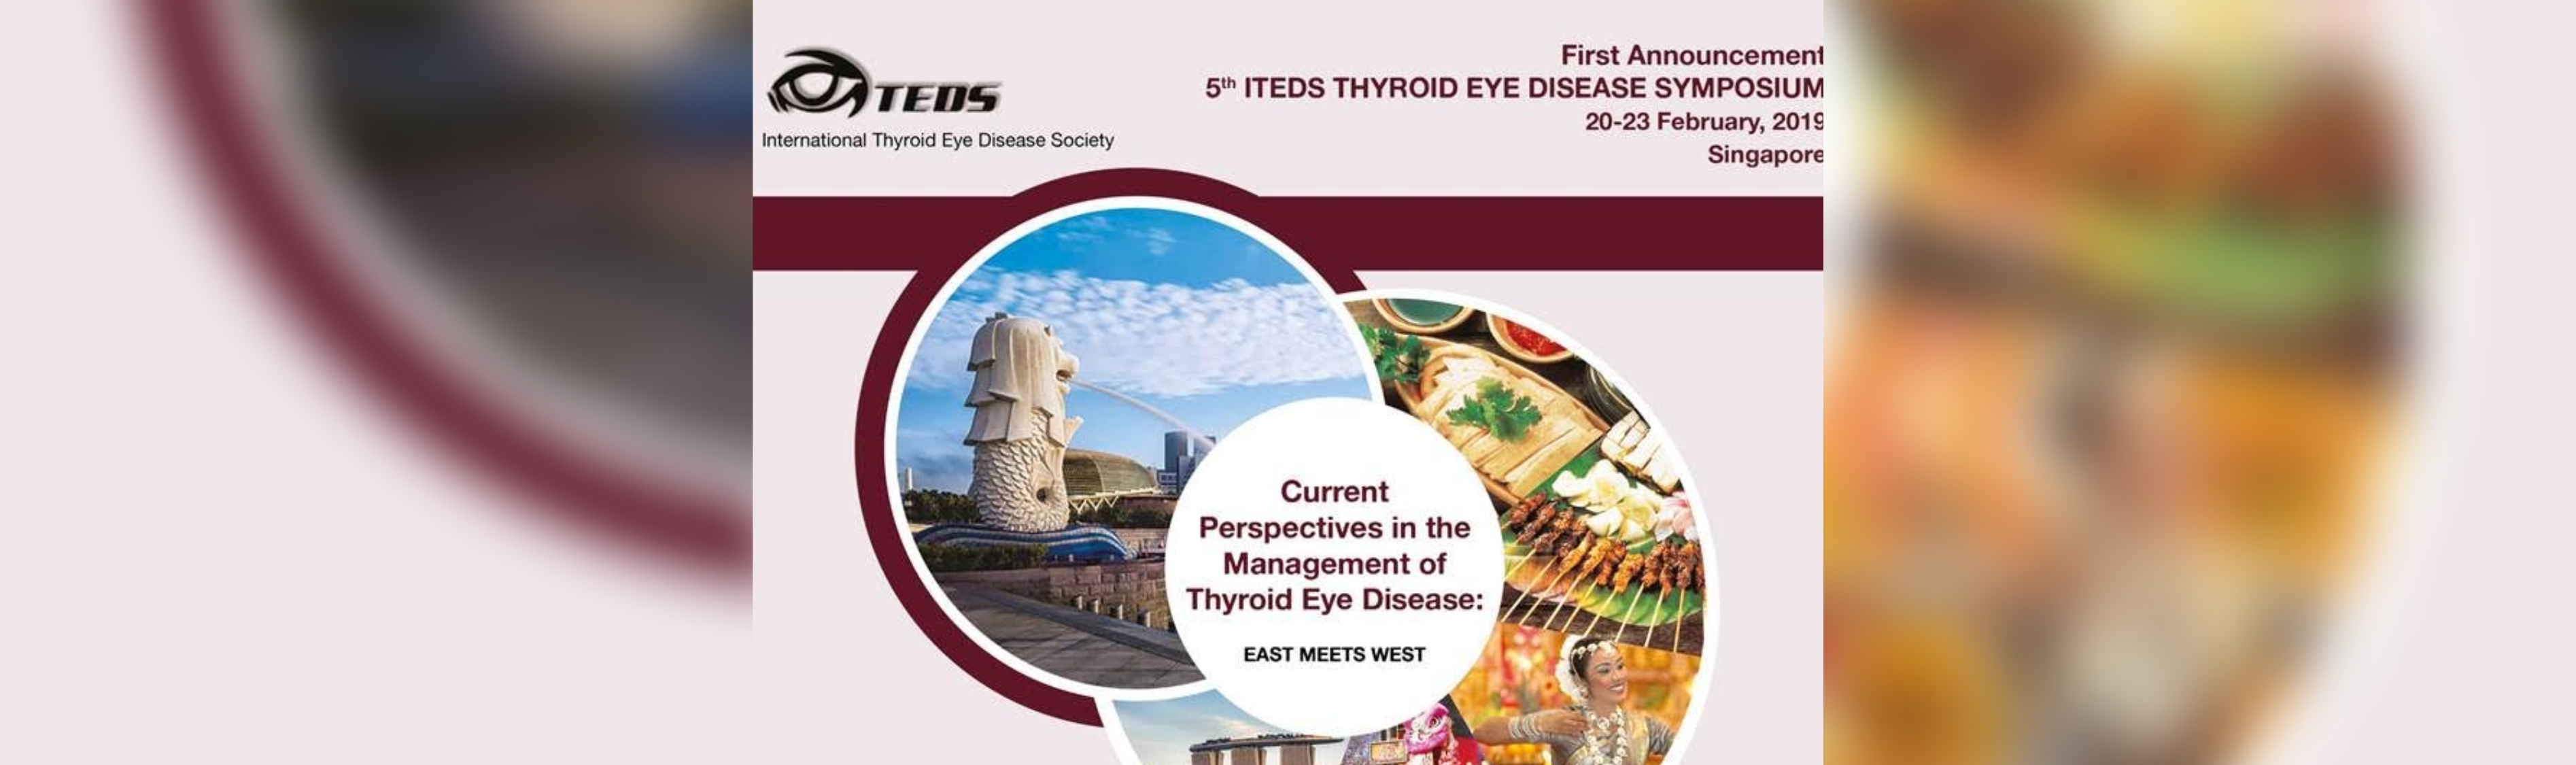 5th ITEDS THYROID EYE DISEASE SYNPOSIUM